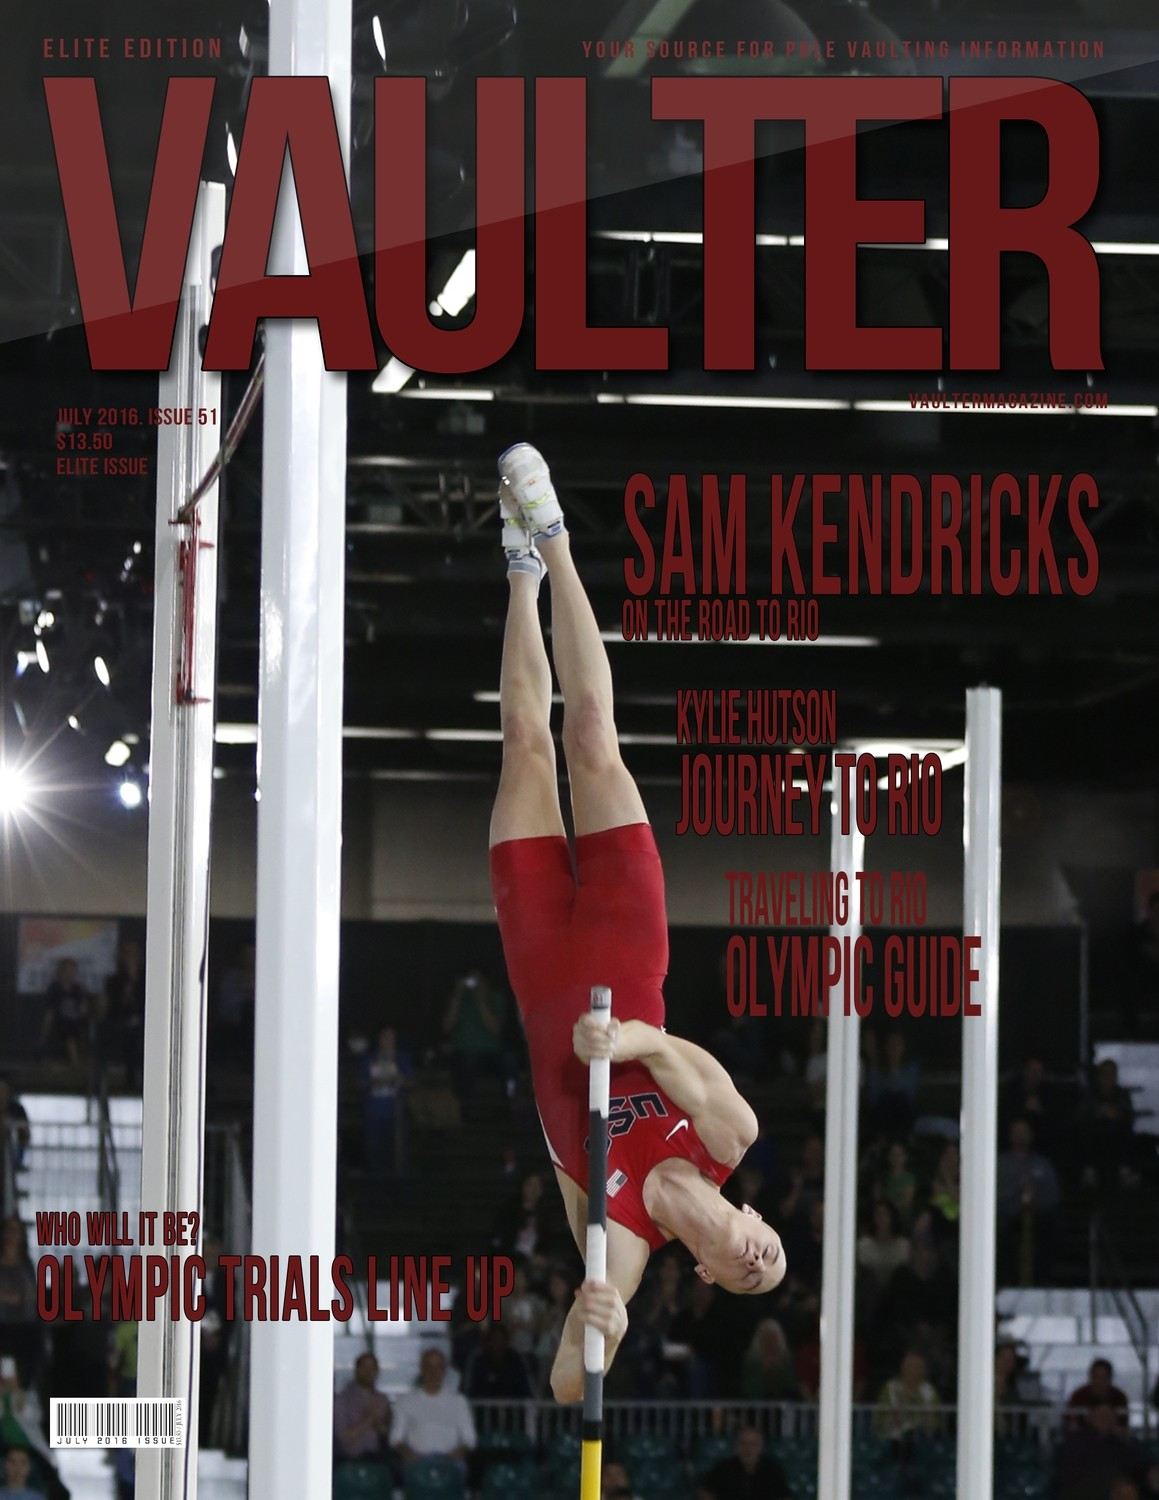 Sam Kendricks Cover of Vaulter Magazine USPS Only